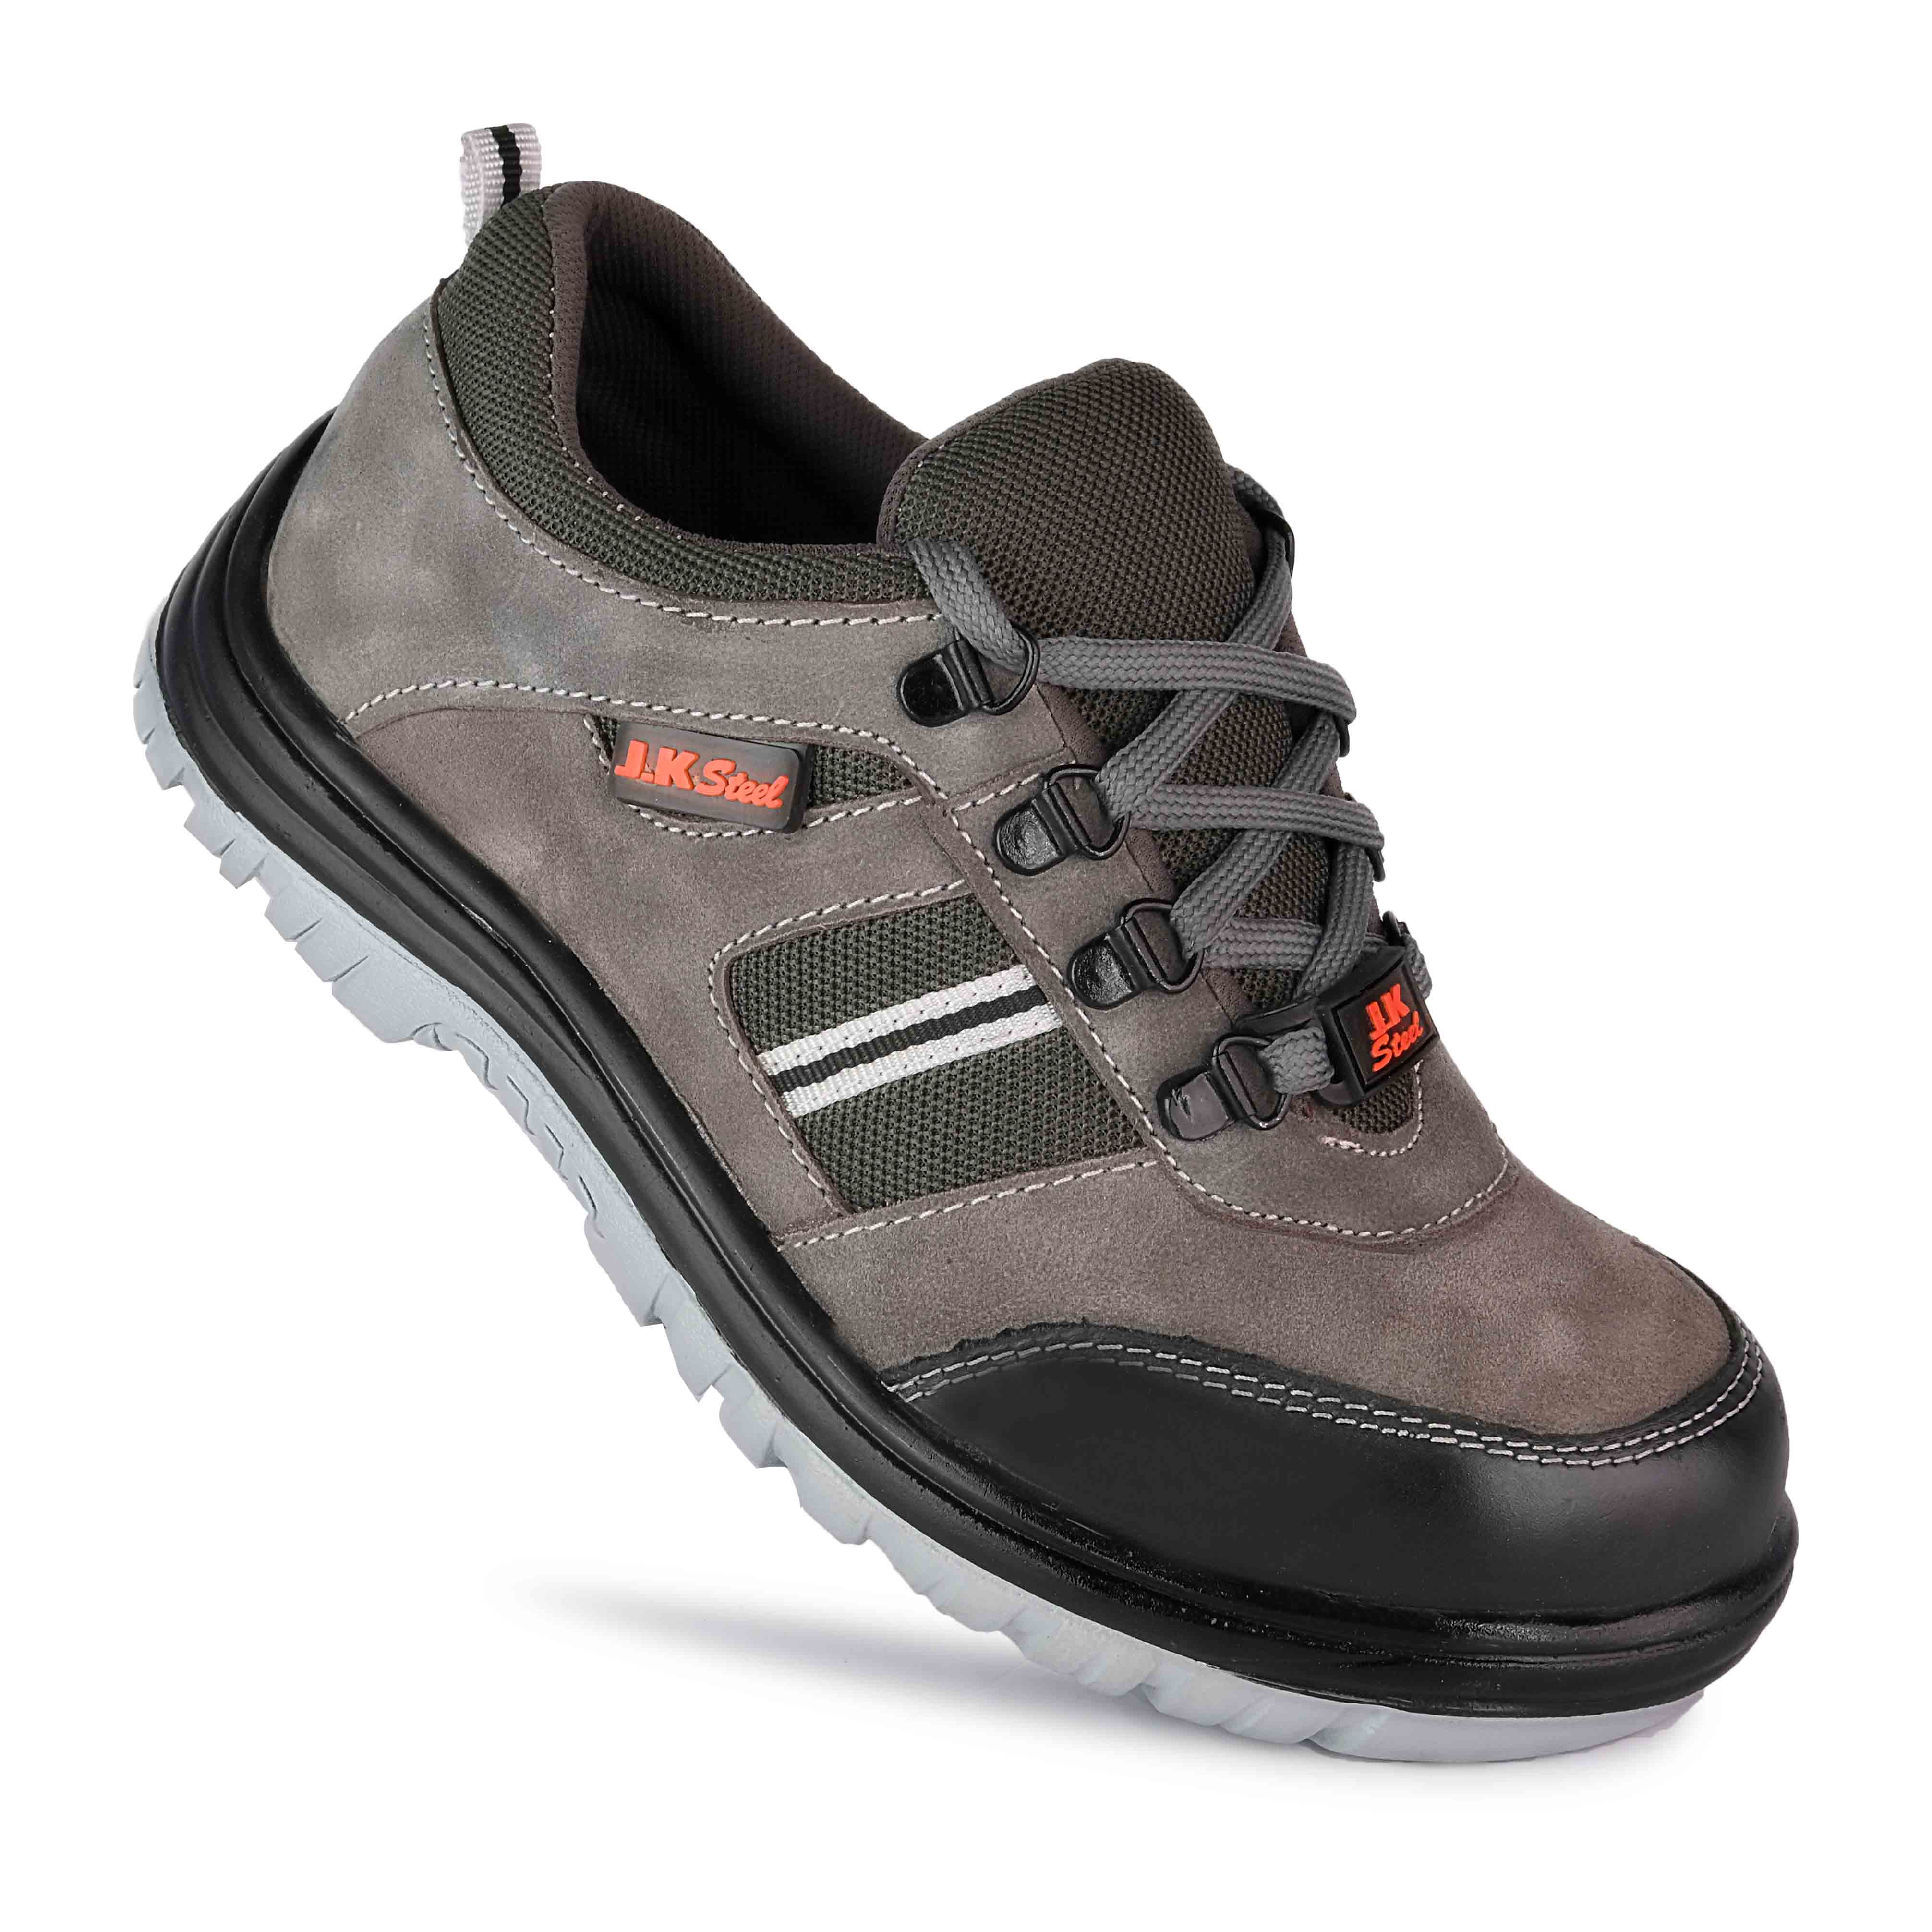 JK STEEL Original Safety Shoes Presents Genuine Leather Stylish Grey Safety JKPSF145GRY (Grey, 6-10, 8 PAIR)